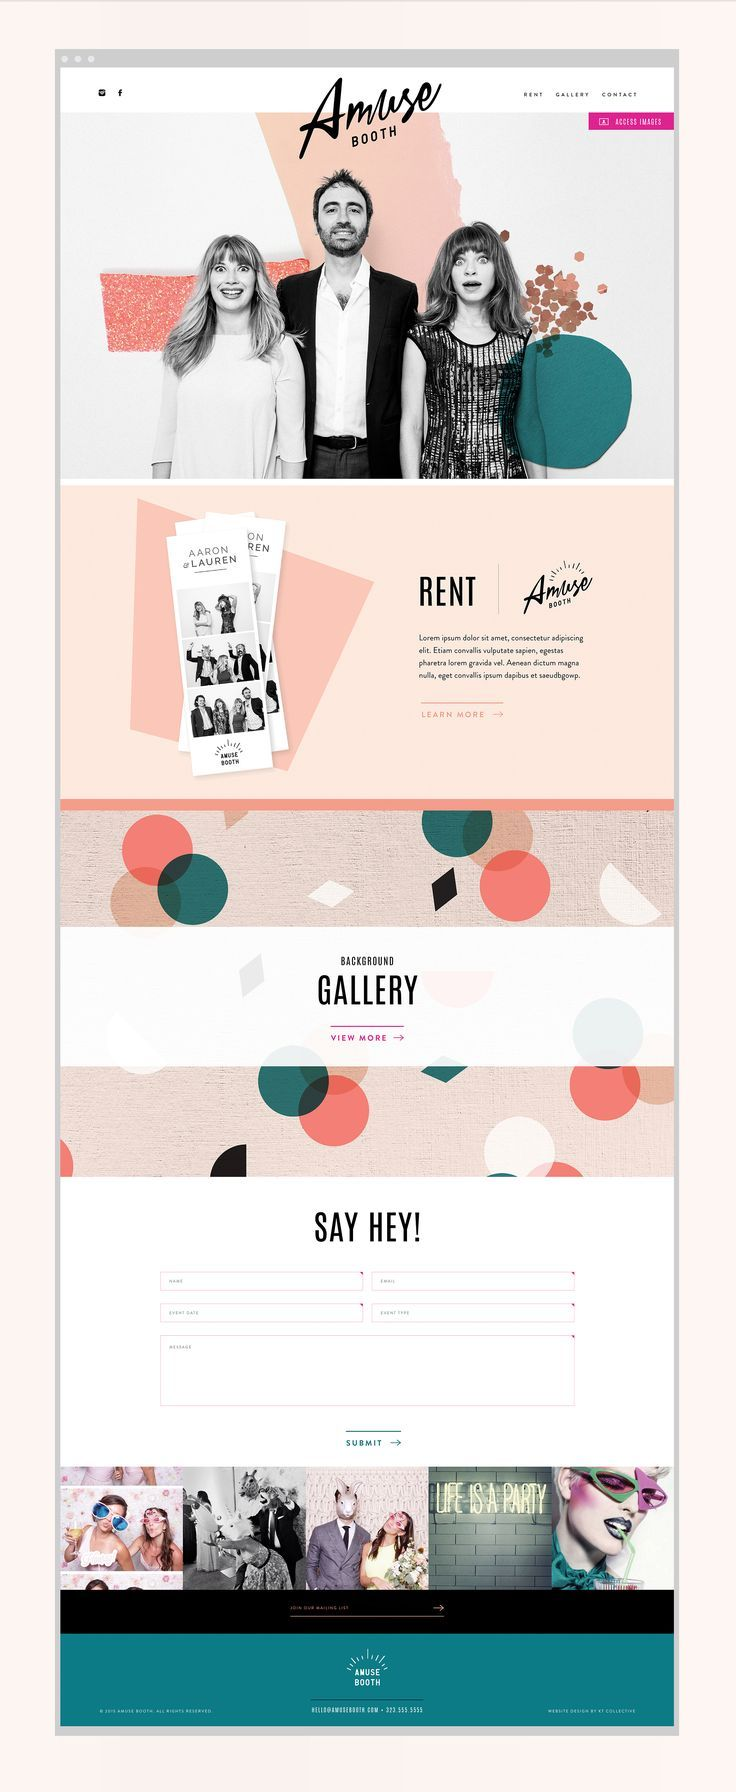 Amuse Booth – Kati Forner. Beautiful website layout!